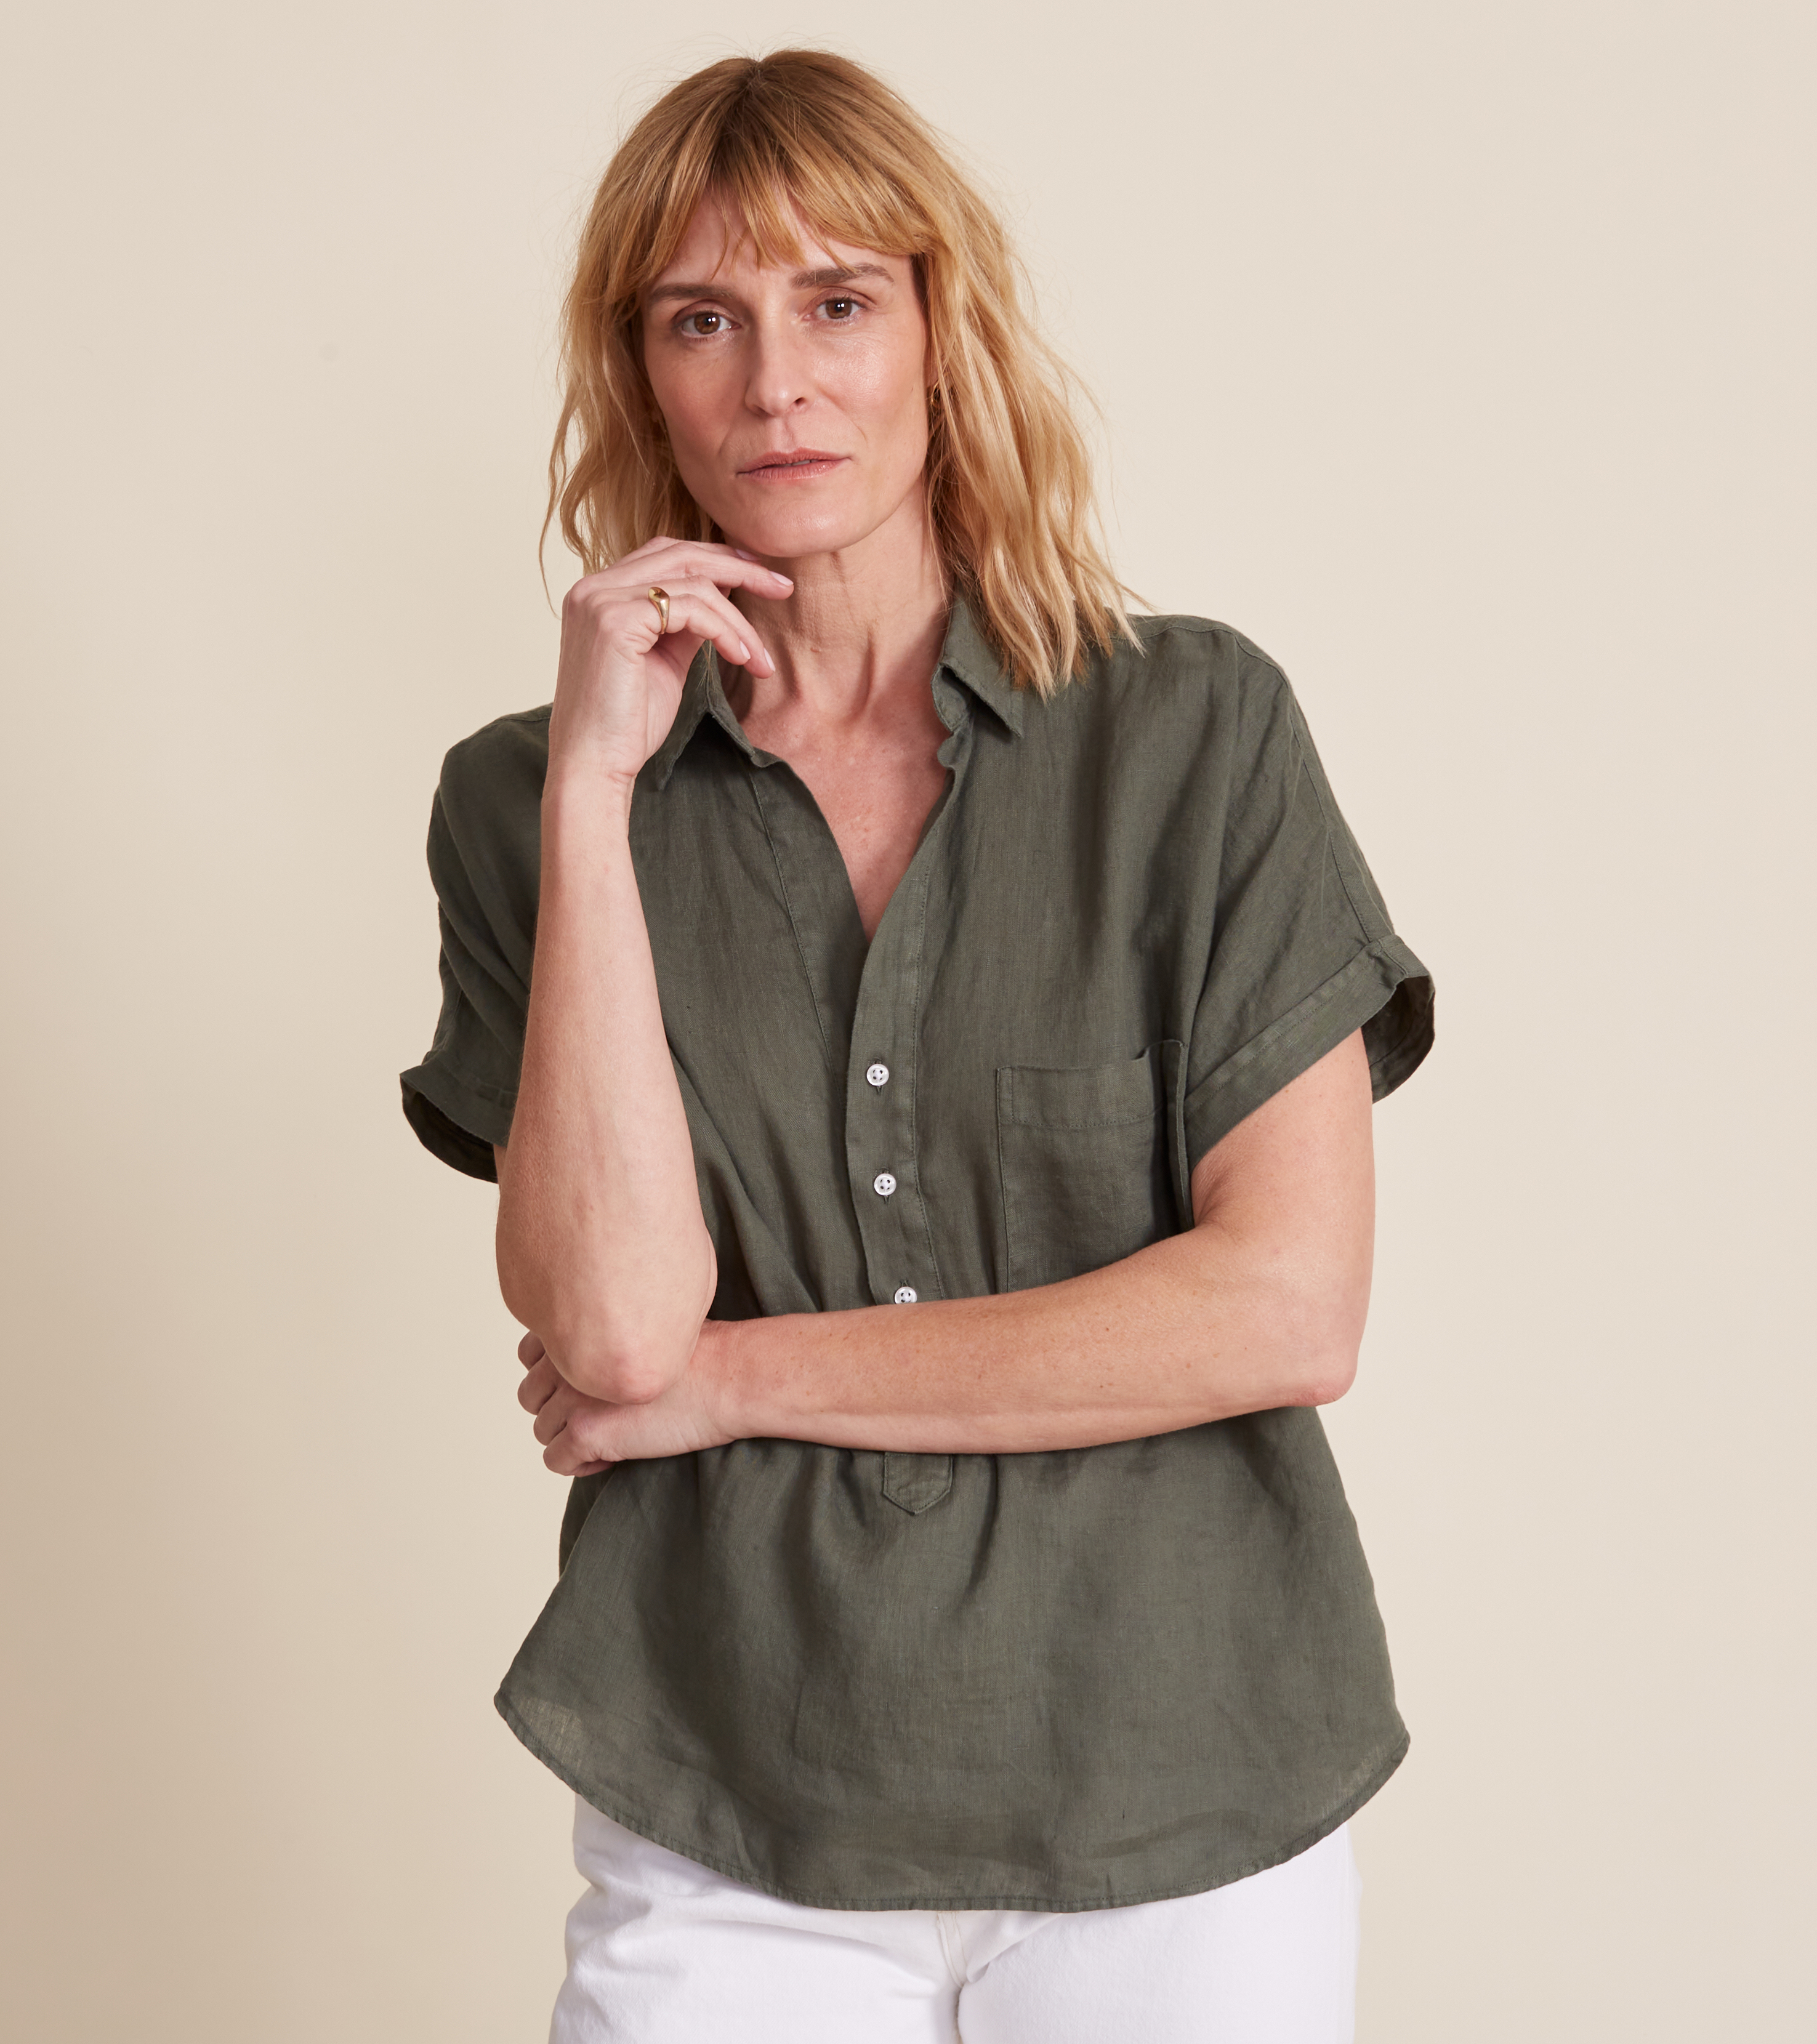 Image of The Artist Short Sleeve Shirt Army Green, Tumbled Linen Final Sale